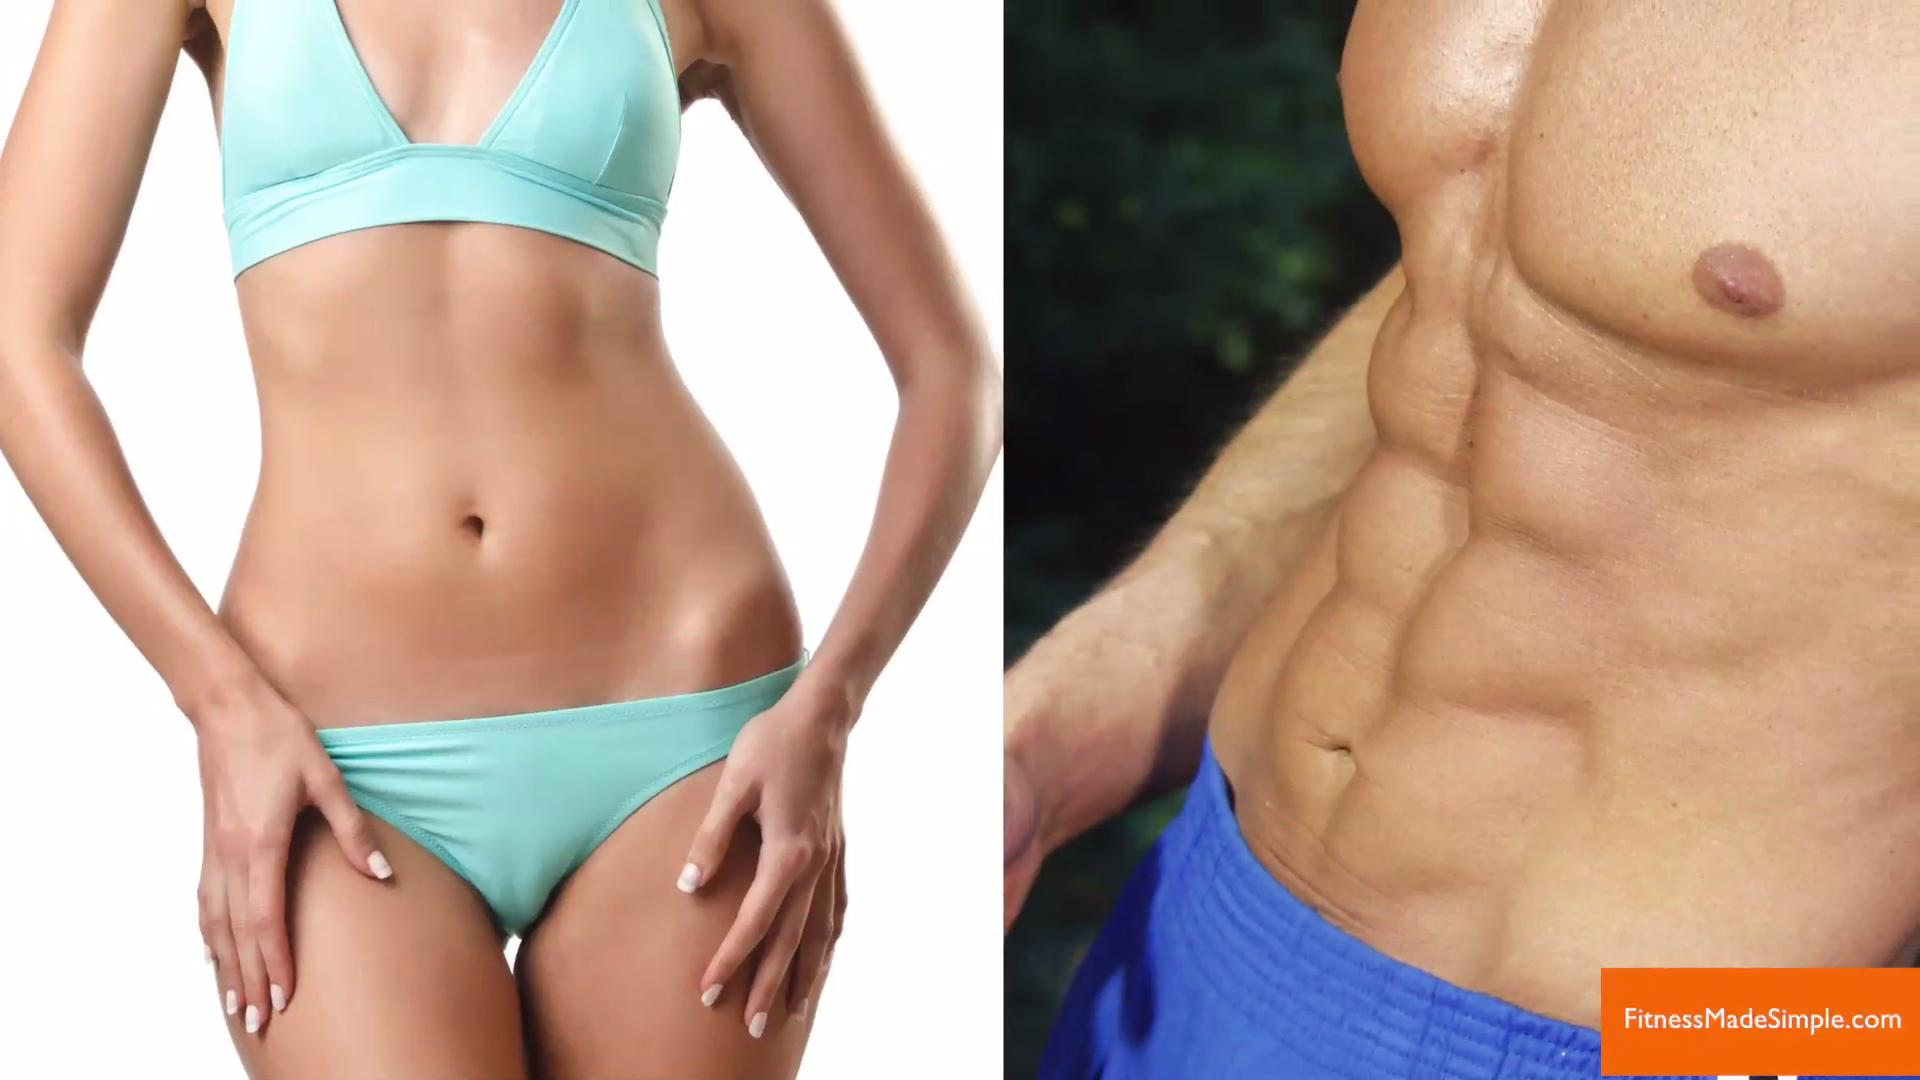 The Best Foods to Give You a Flat Stomach & Better Abs